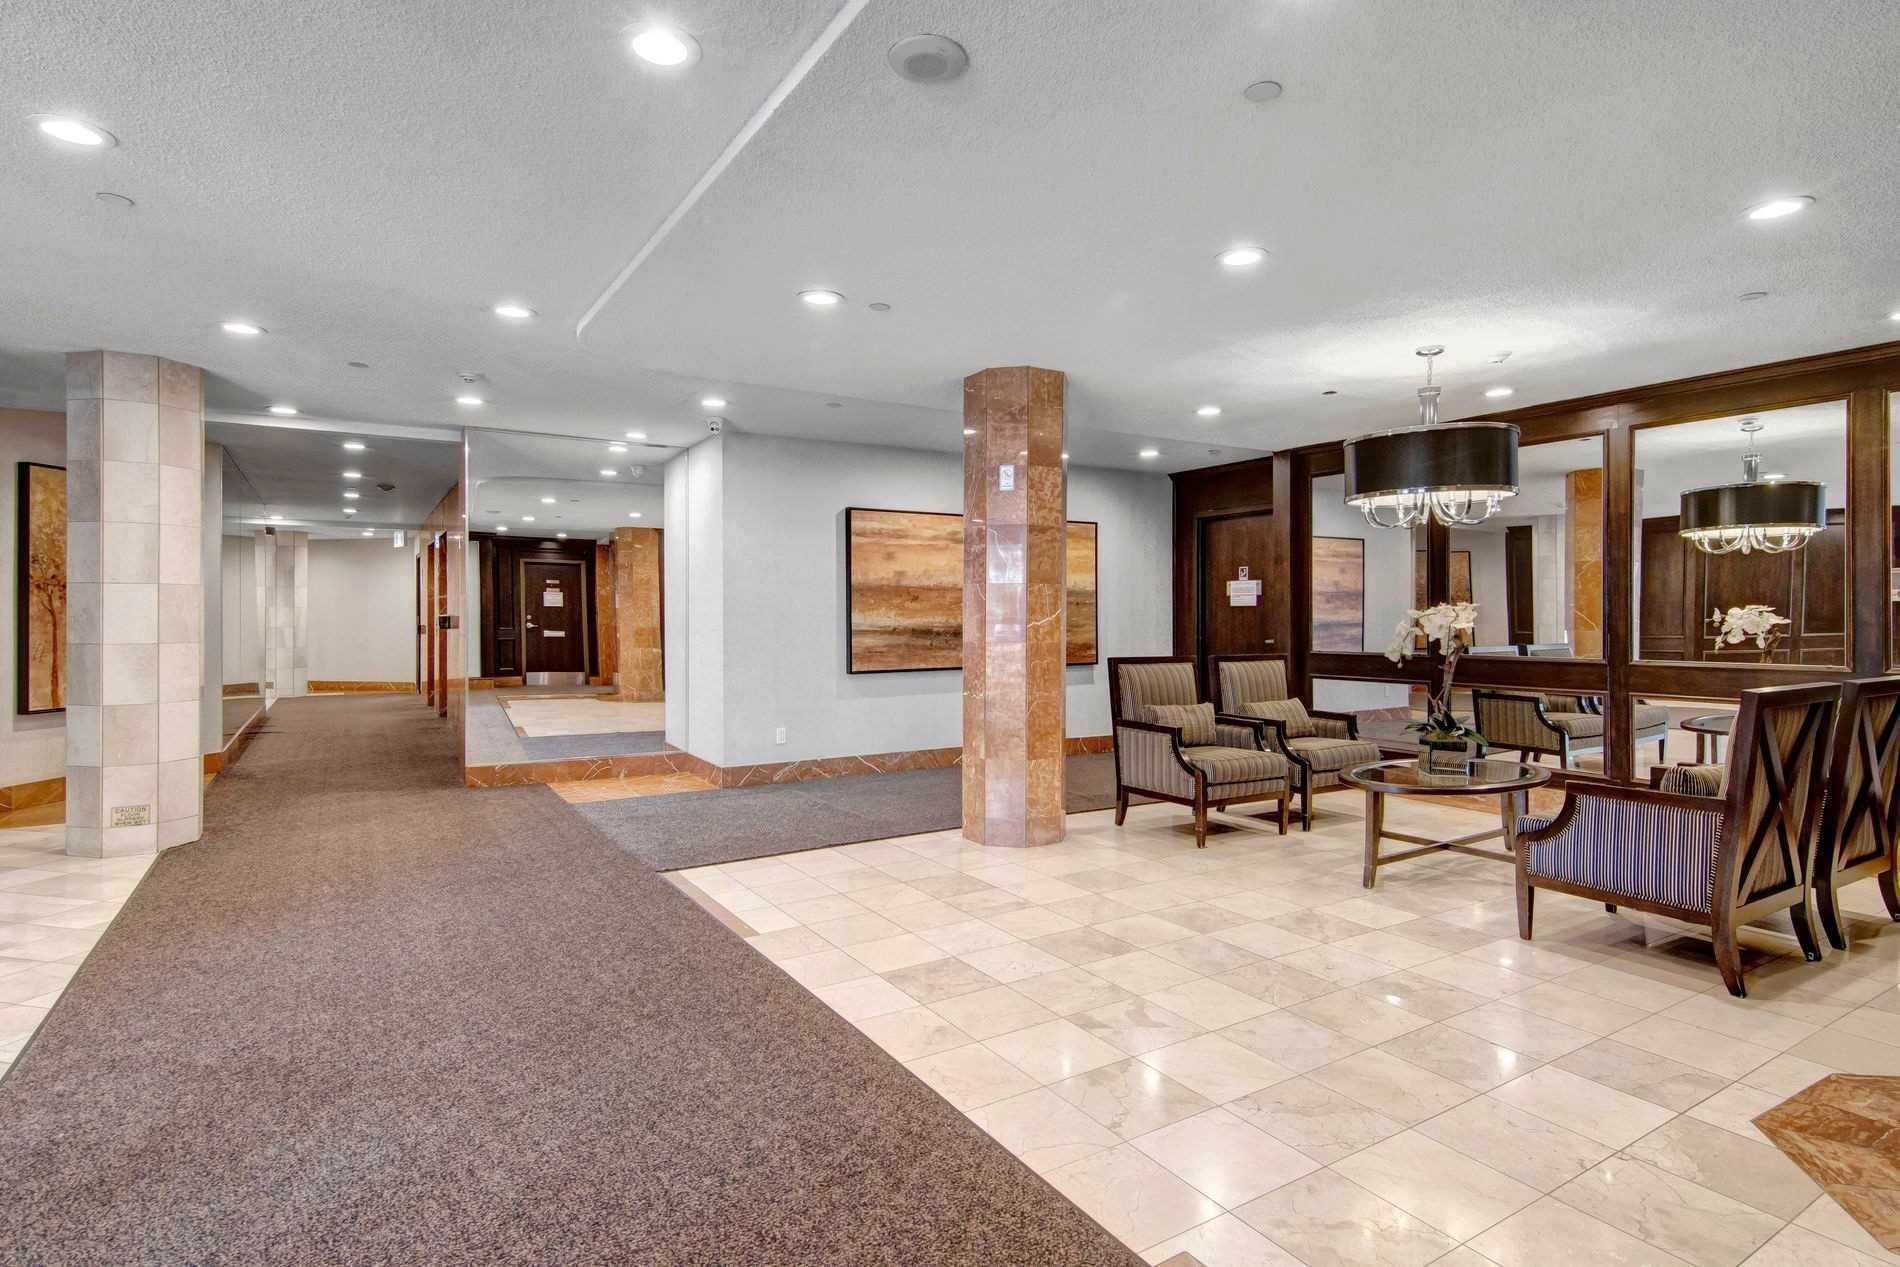 1101 Steeles Ave W, unit 502 for sale in Toronto - image #2